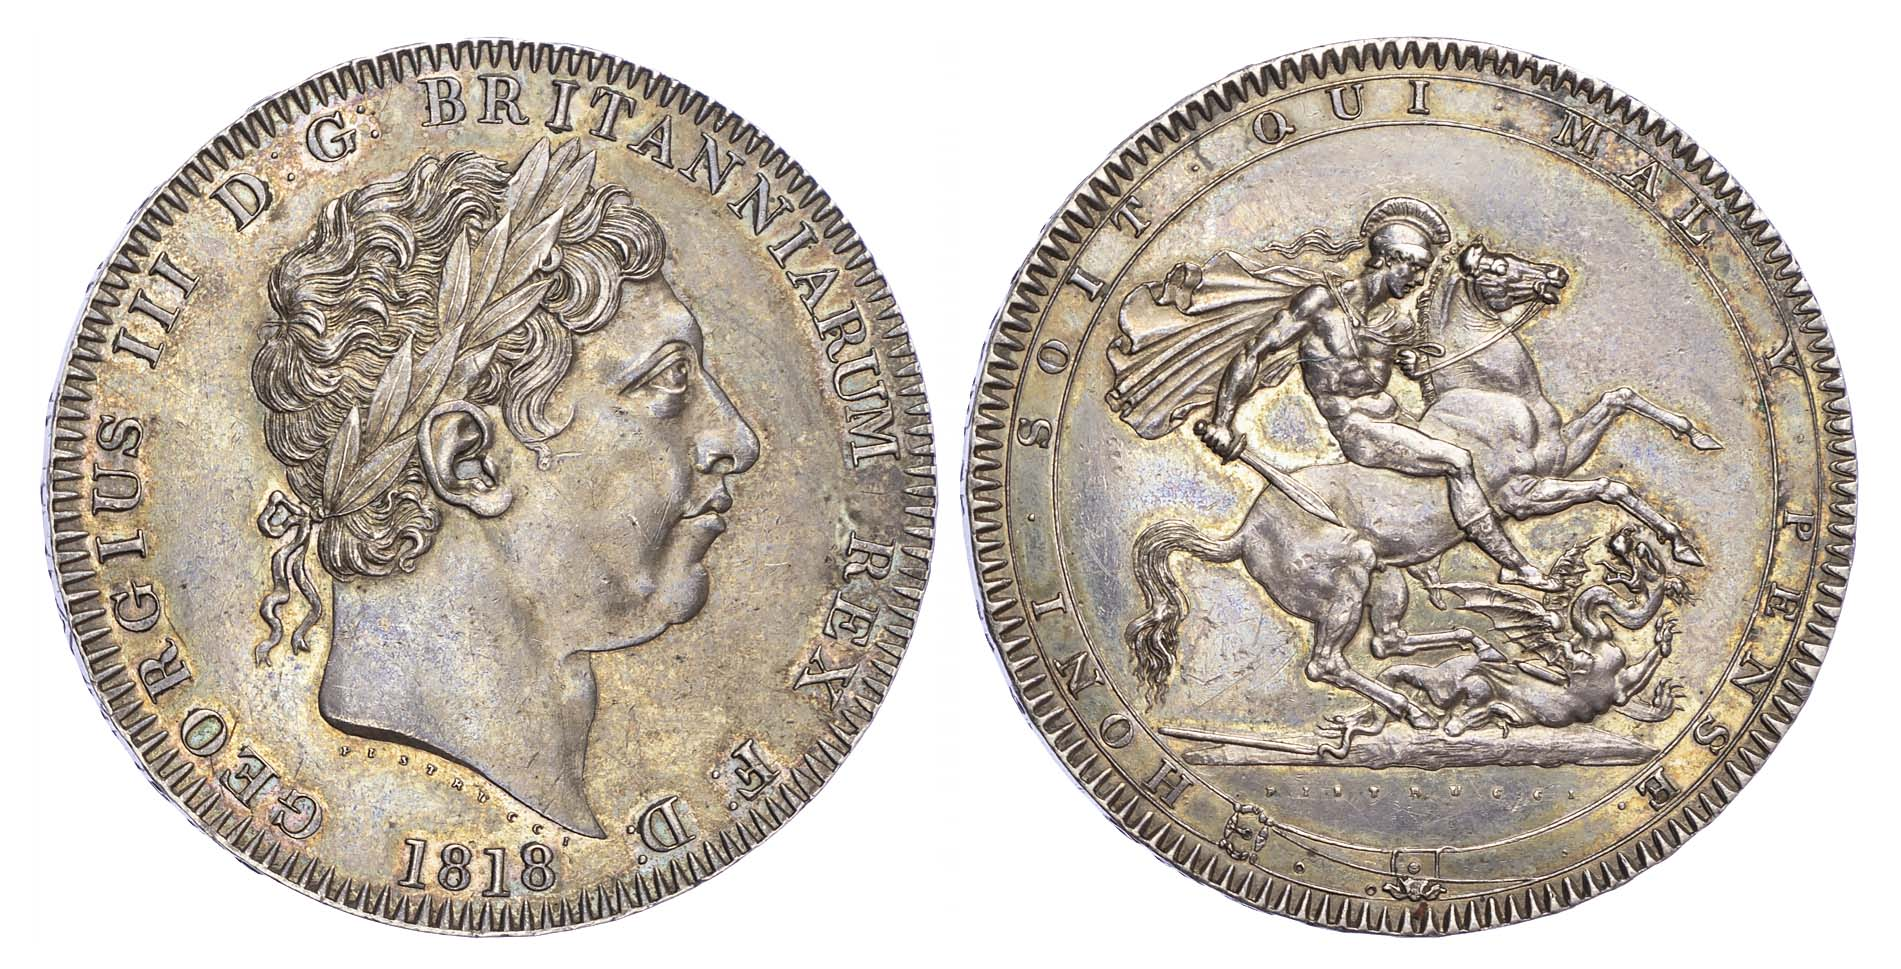 George III (1760-1820), Crown, 1818, LVIII edge